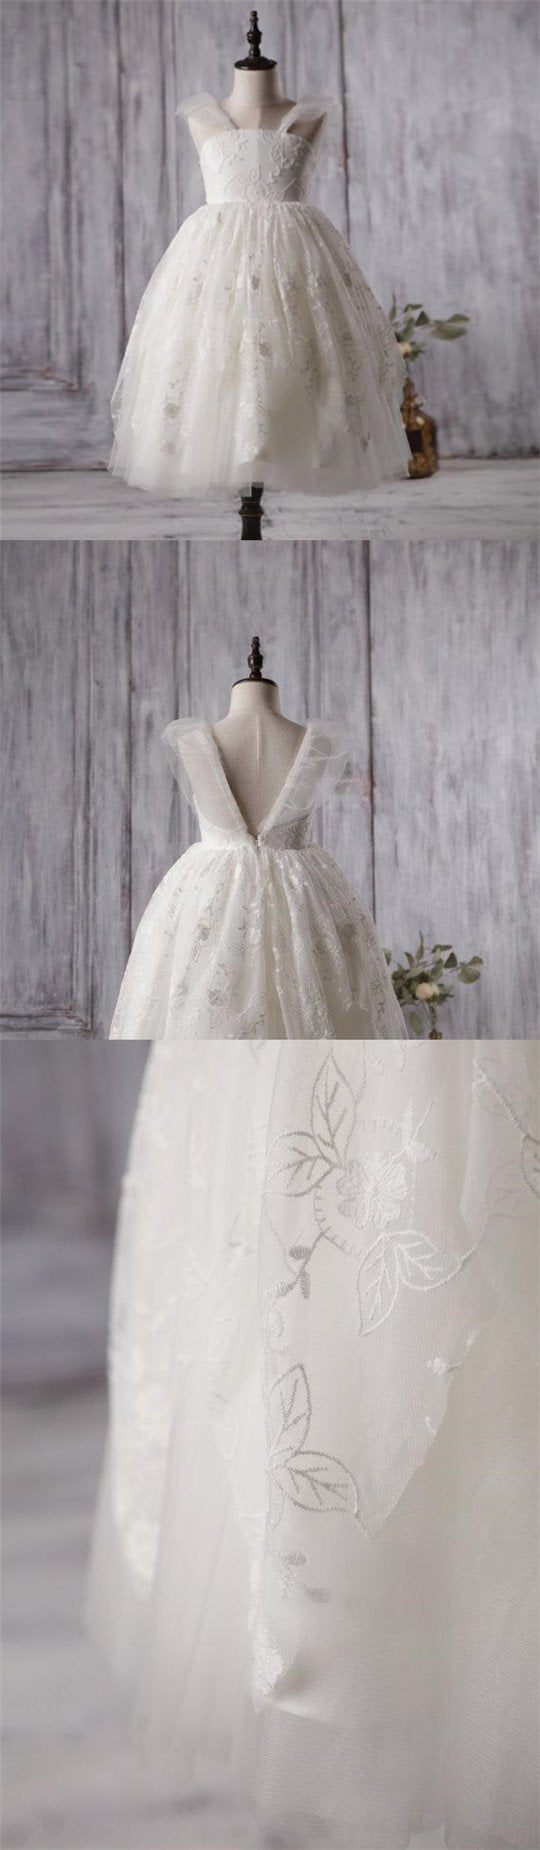 adaf81d69d Ivory Cute Lace Tulle Flower Girl Dresses